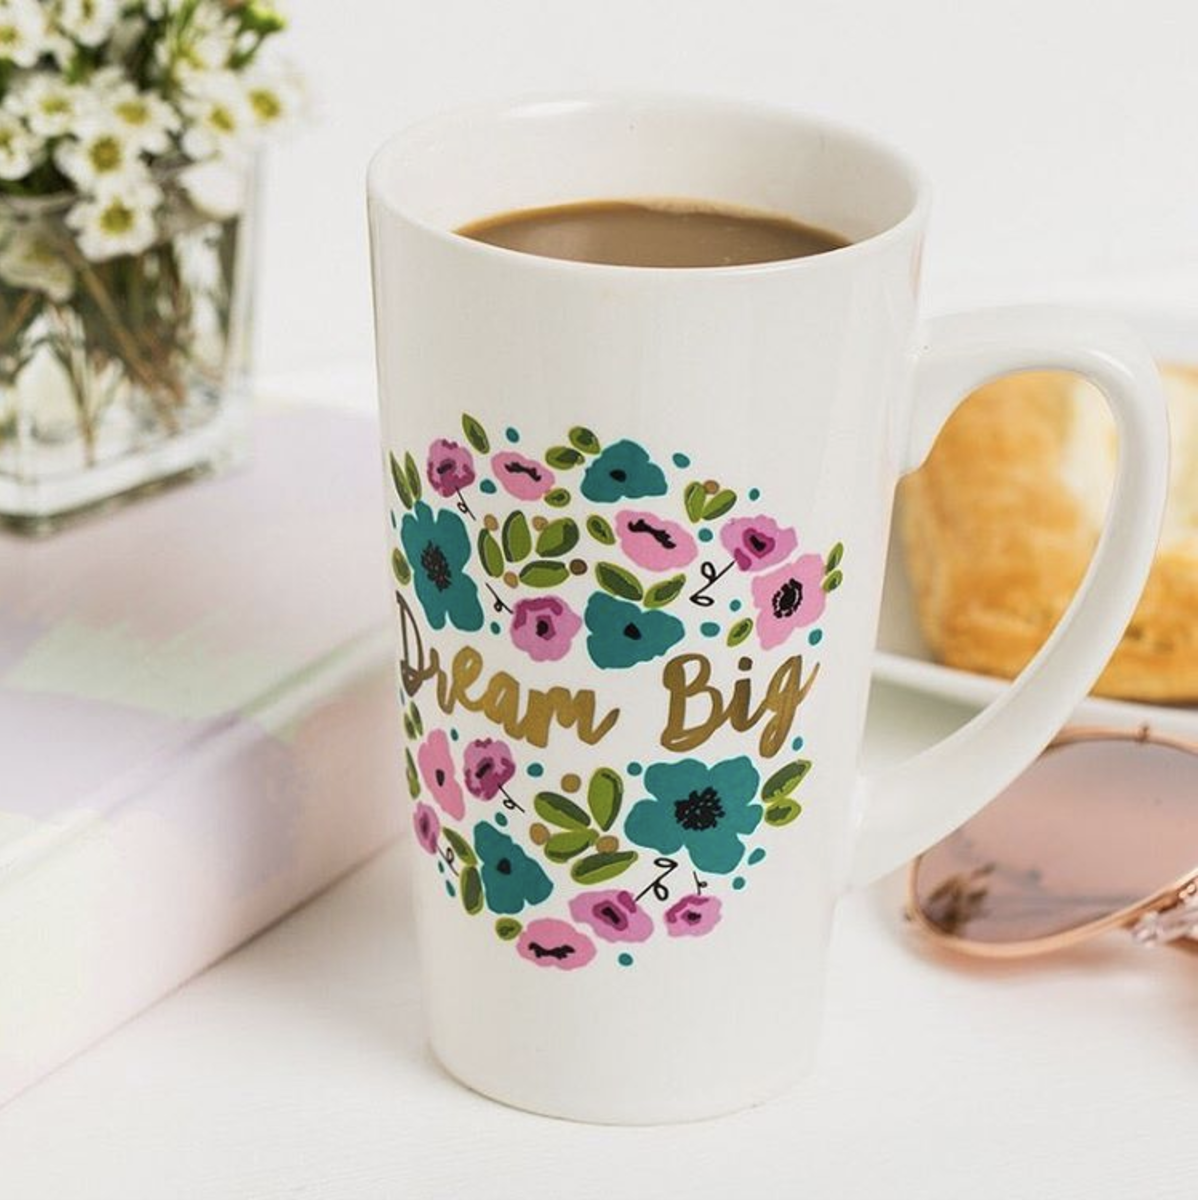 Tanger Outlets francesca's dream big mug